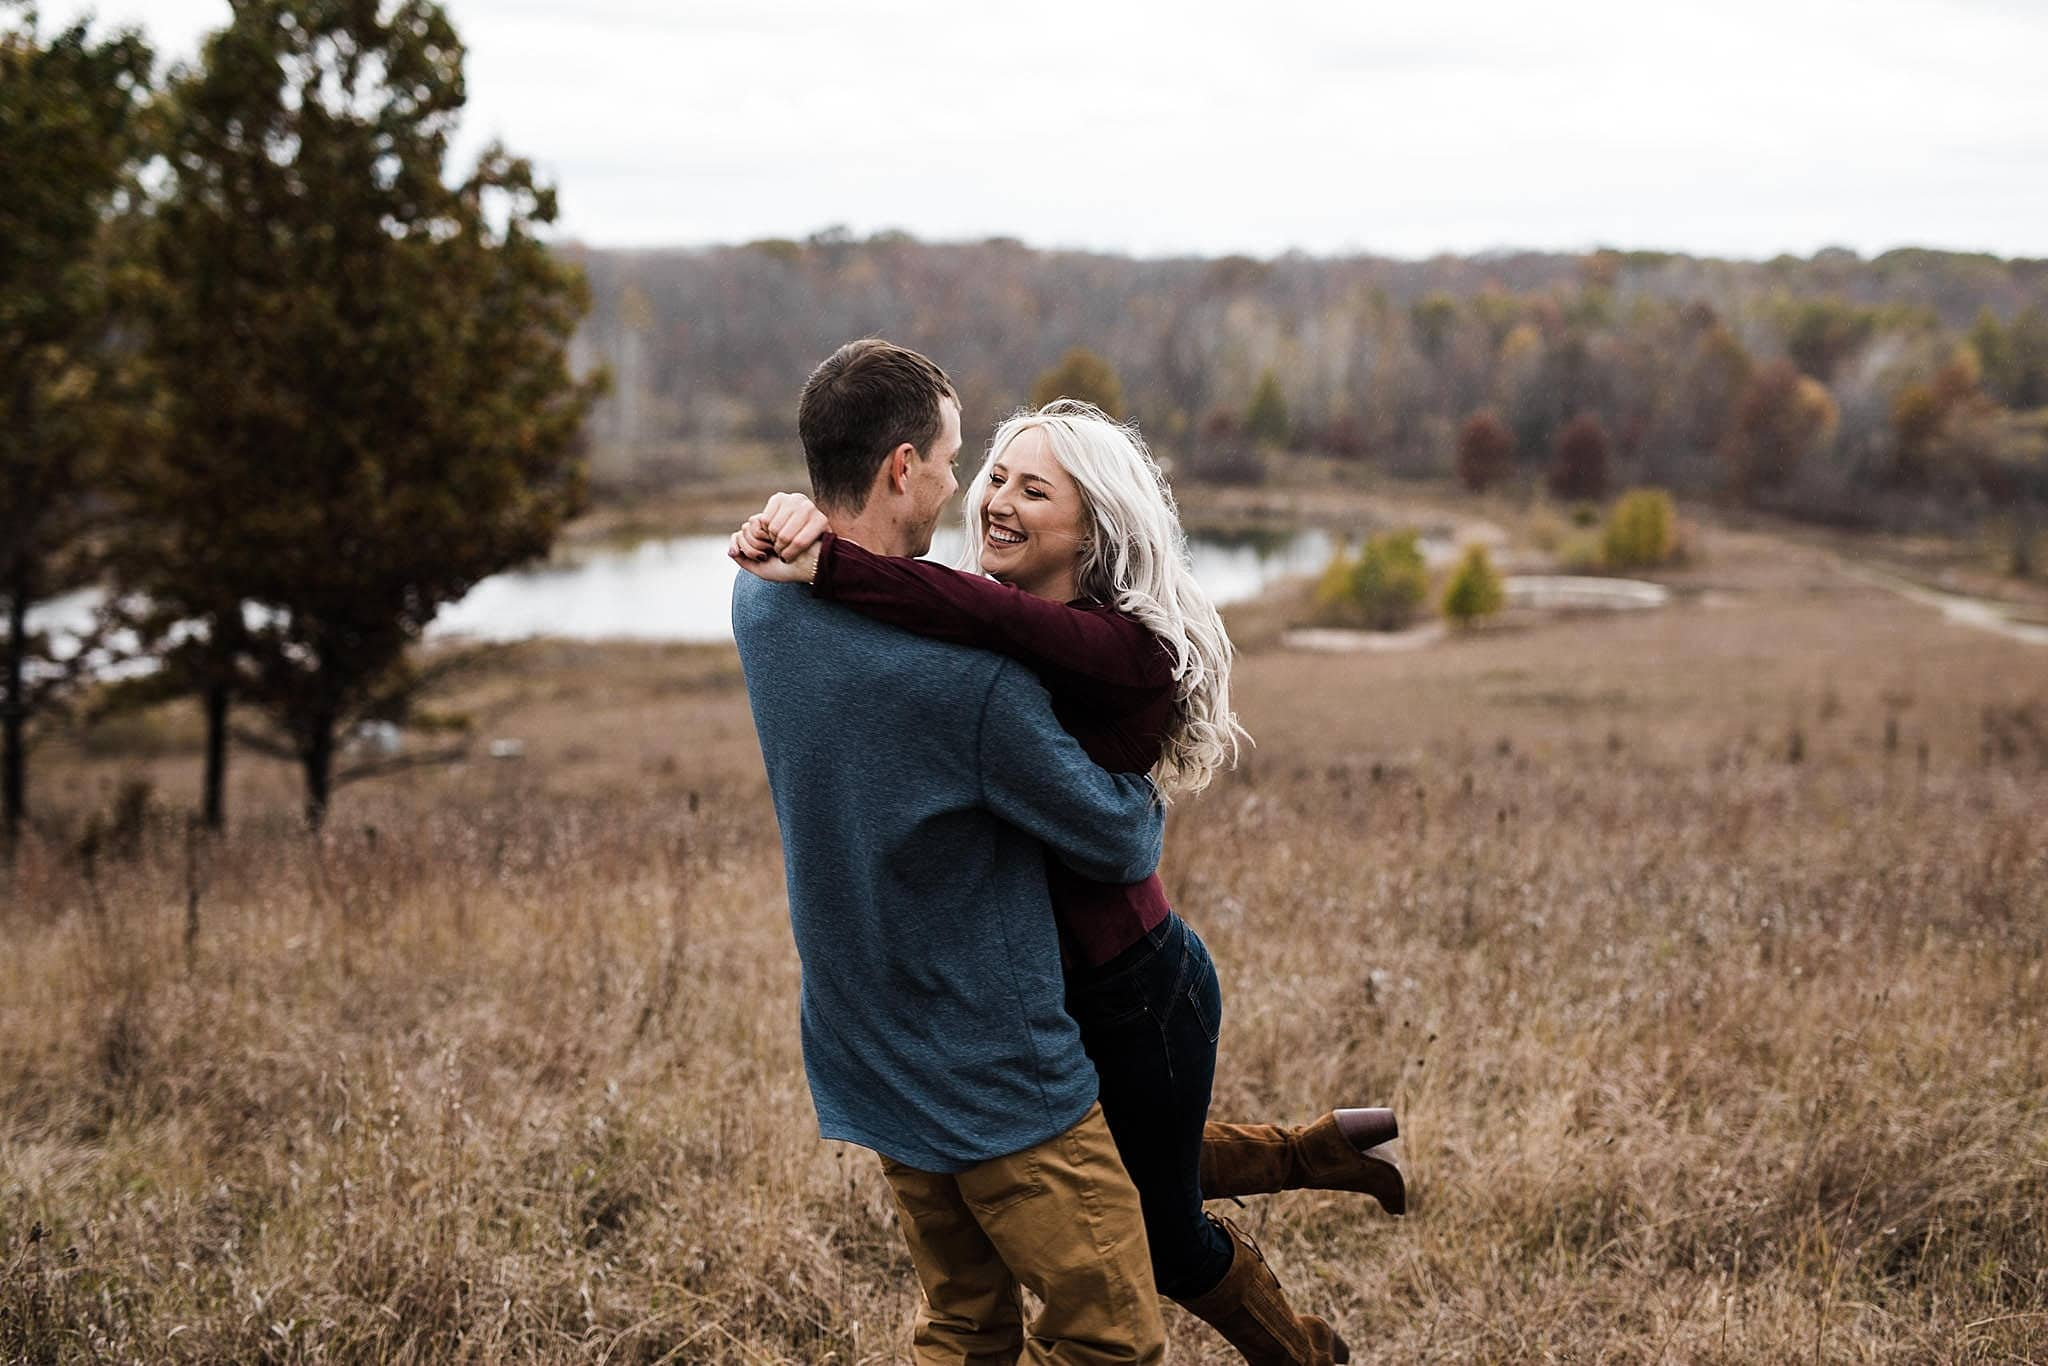 Intimate Adventure Session by Destination Wedding Photographers ME+HIM Photography